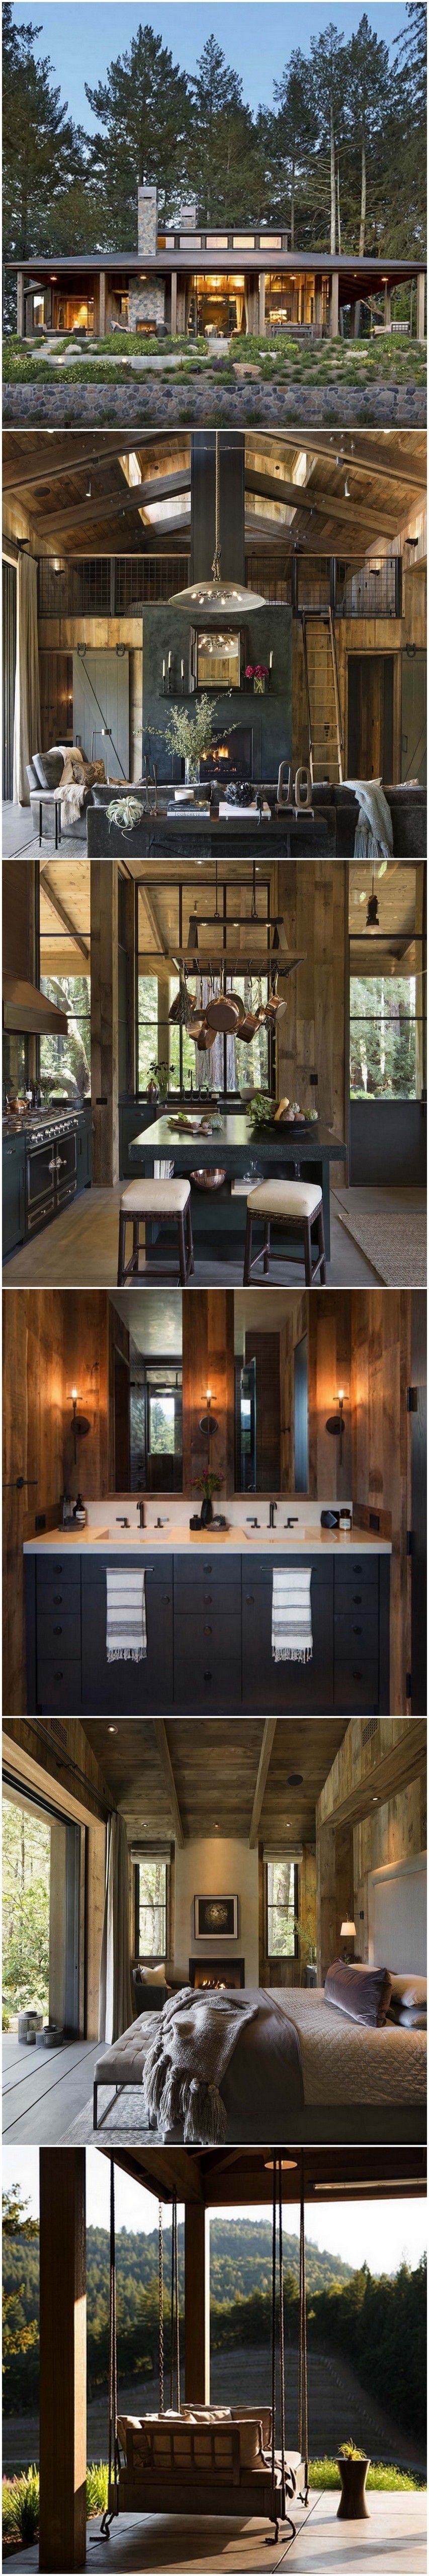 Rustic Mountain House Plans with Walkout Basement Lovely Farmhouse Style Cabin In Napa Valley Everything Log